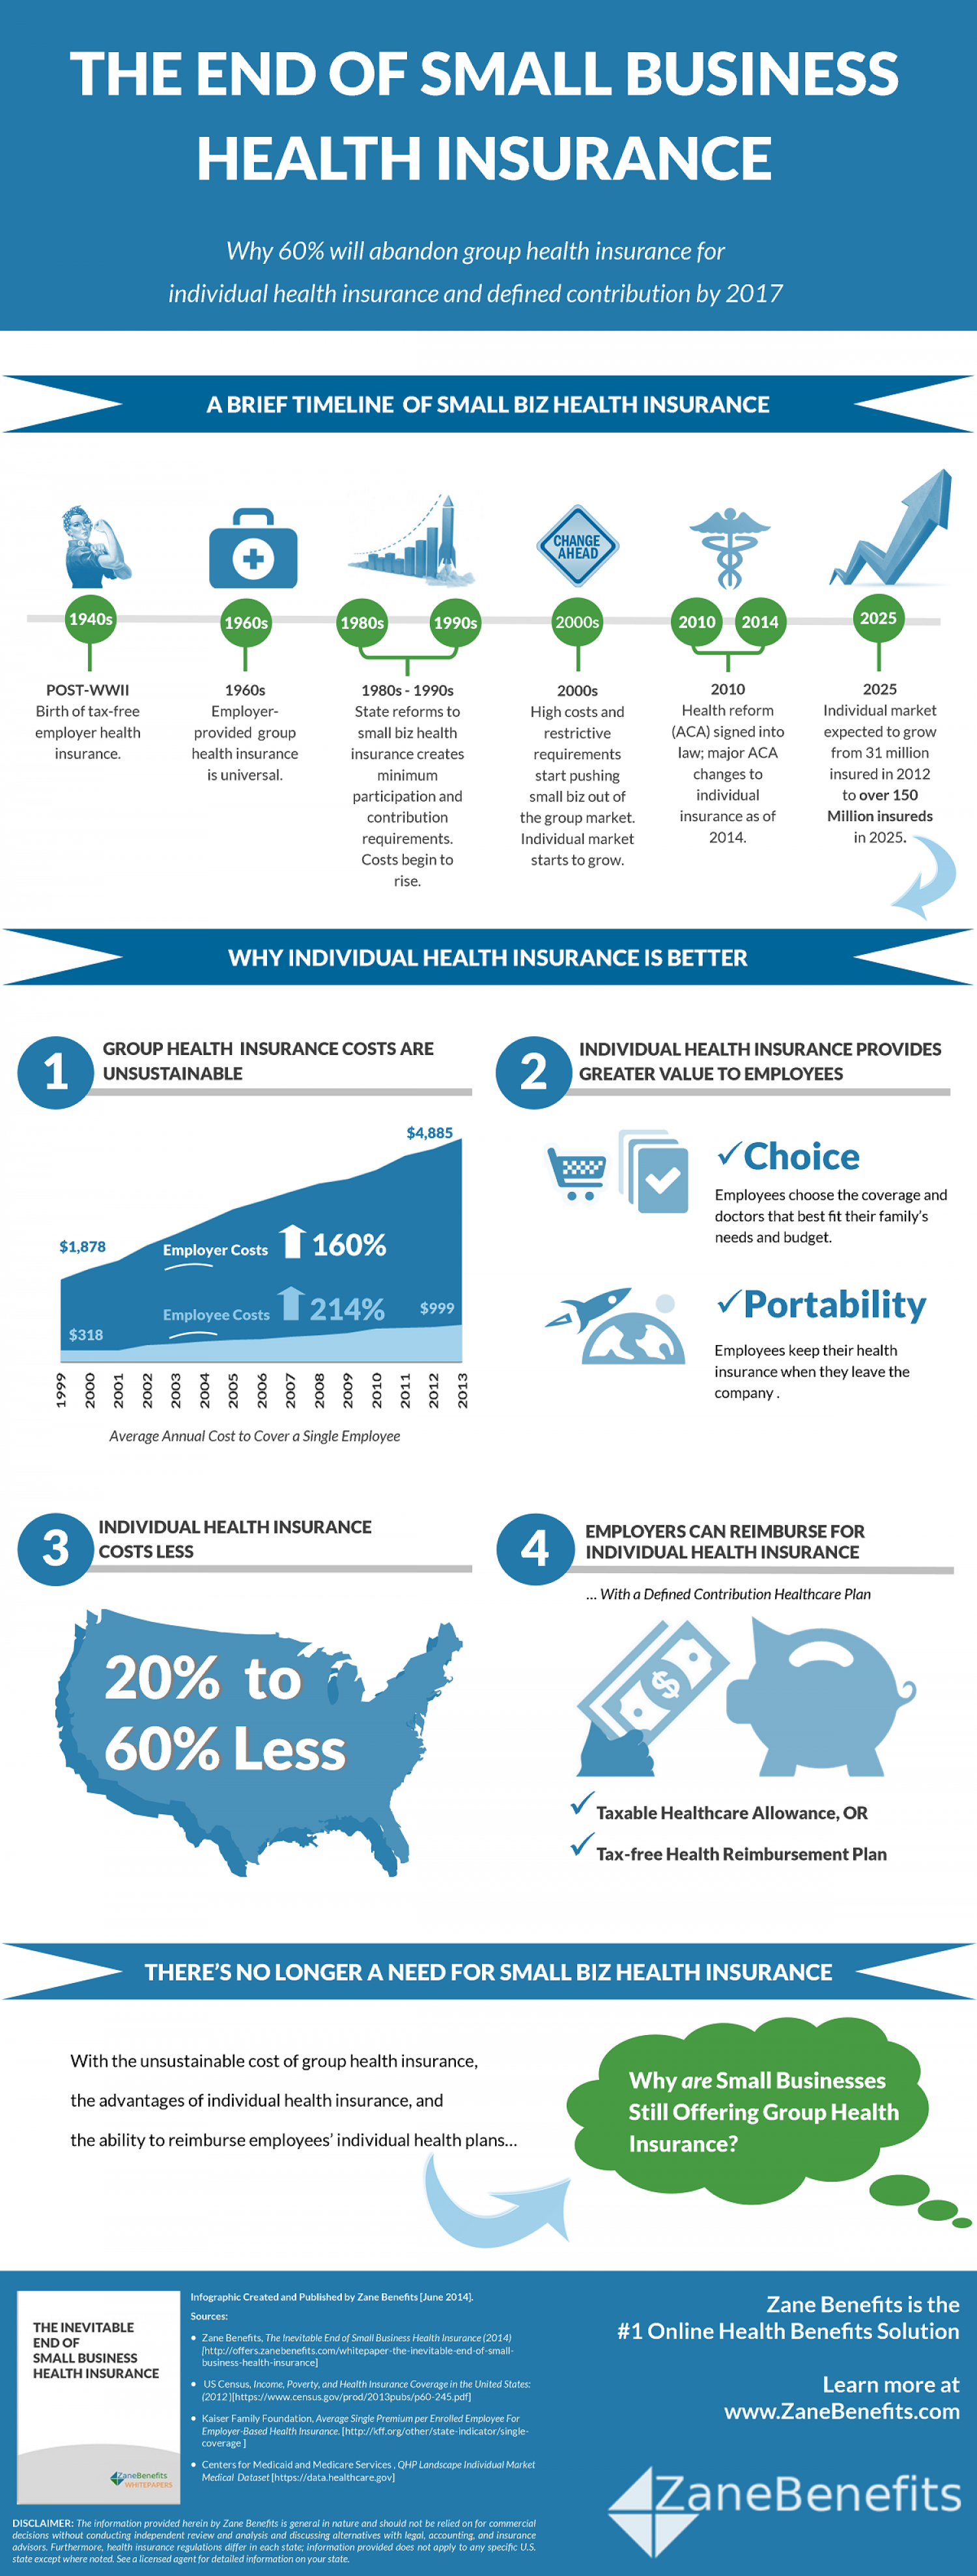 The End of Small Business Health Insurance Infographic